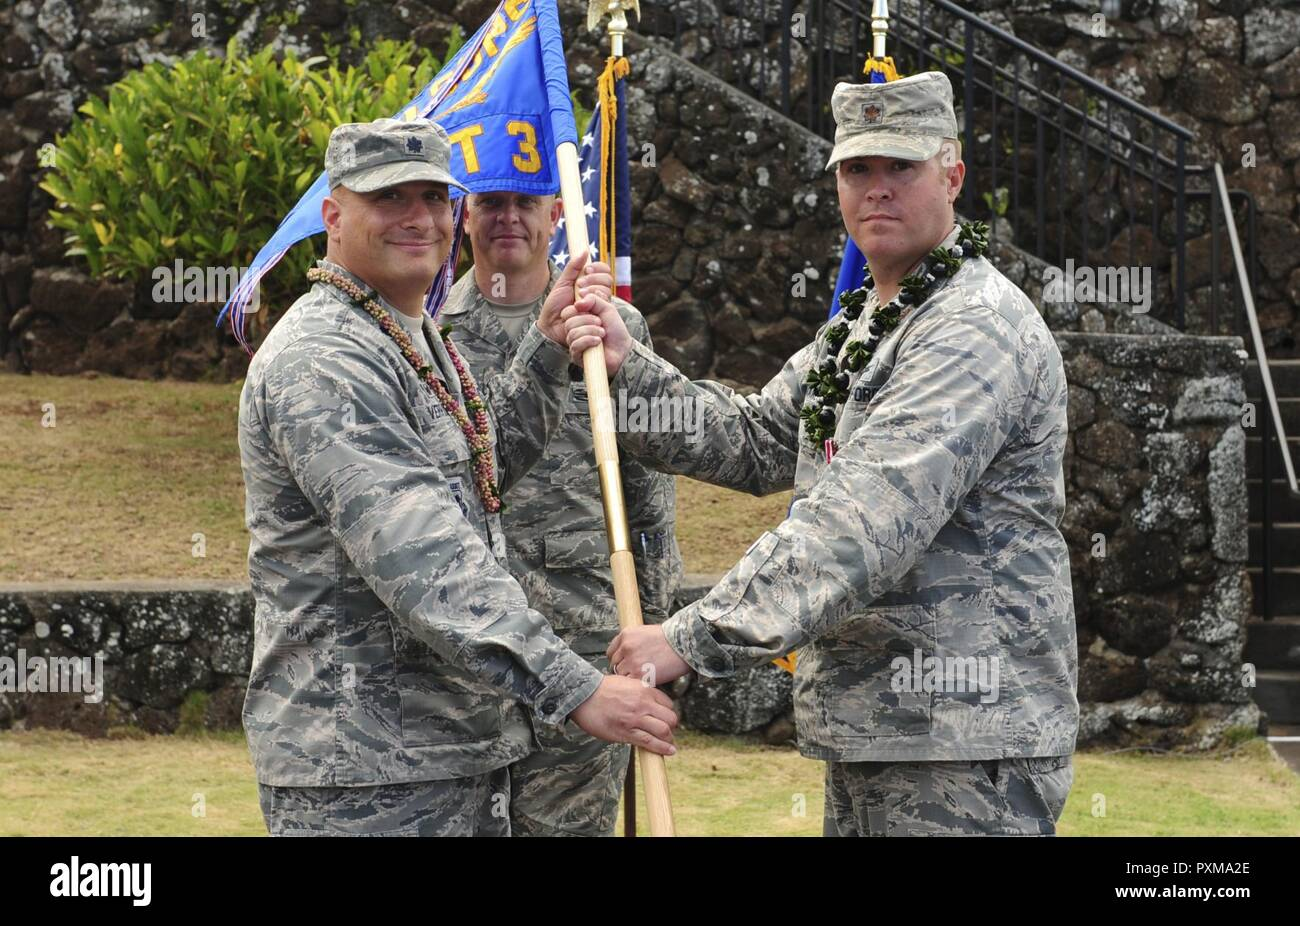 Lt. Col. Phillip Verroco, 21st Space Operations Squadron commander, takes the detachment flag from Maj. Robert F. Shumaker, Detachment 3 outgoing commander, during the Detachment 3 Change of Command Ceremony, Kaena Point, Hawaii, June 9, 2017.  Detachment 3 is a component of the 21st Space Operations Squadron, 50th Network Operations Group, 50th Space Wing, and is located on the western tip of Oahu.  It is the oldest and one of seven worldwide remote tracking stations in the Air Force Satellite Control Network. - Stock Image